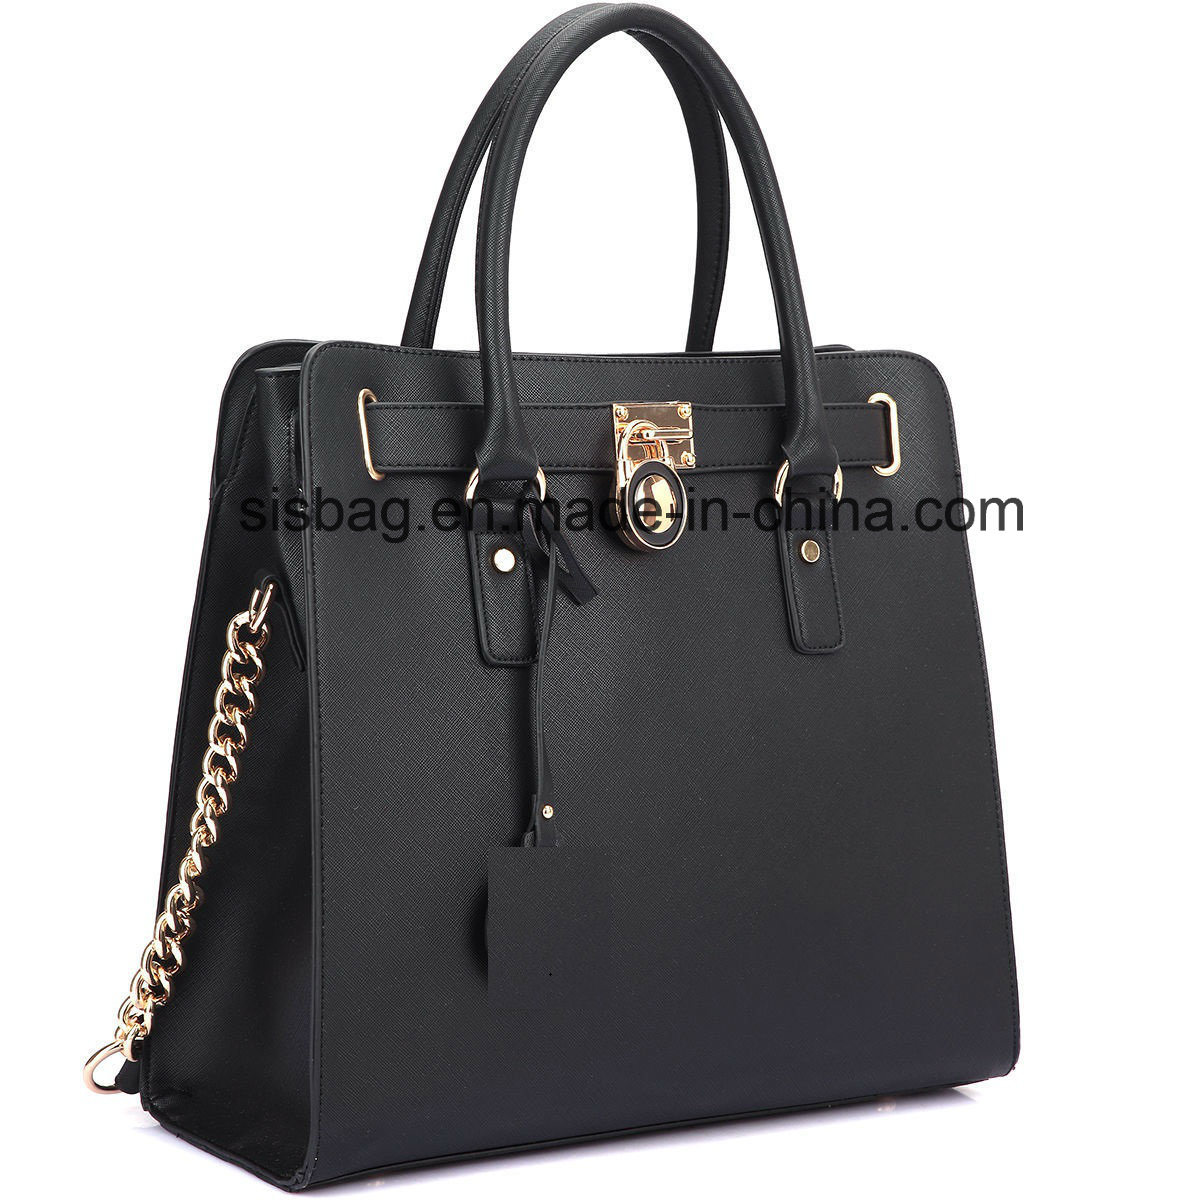 New Designer Padlock Leather Satchel Handbag Briefcase Women Bag